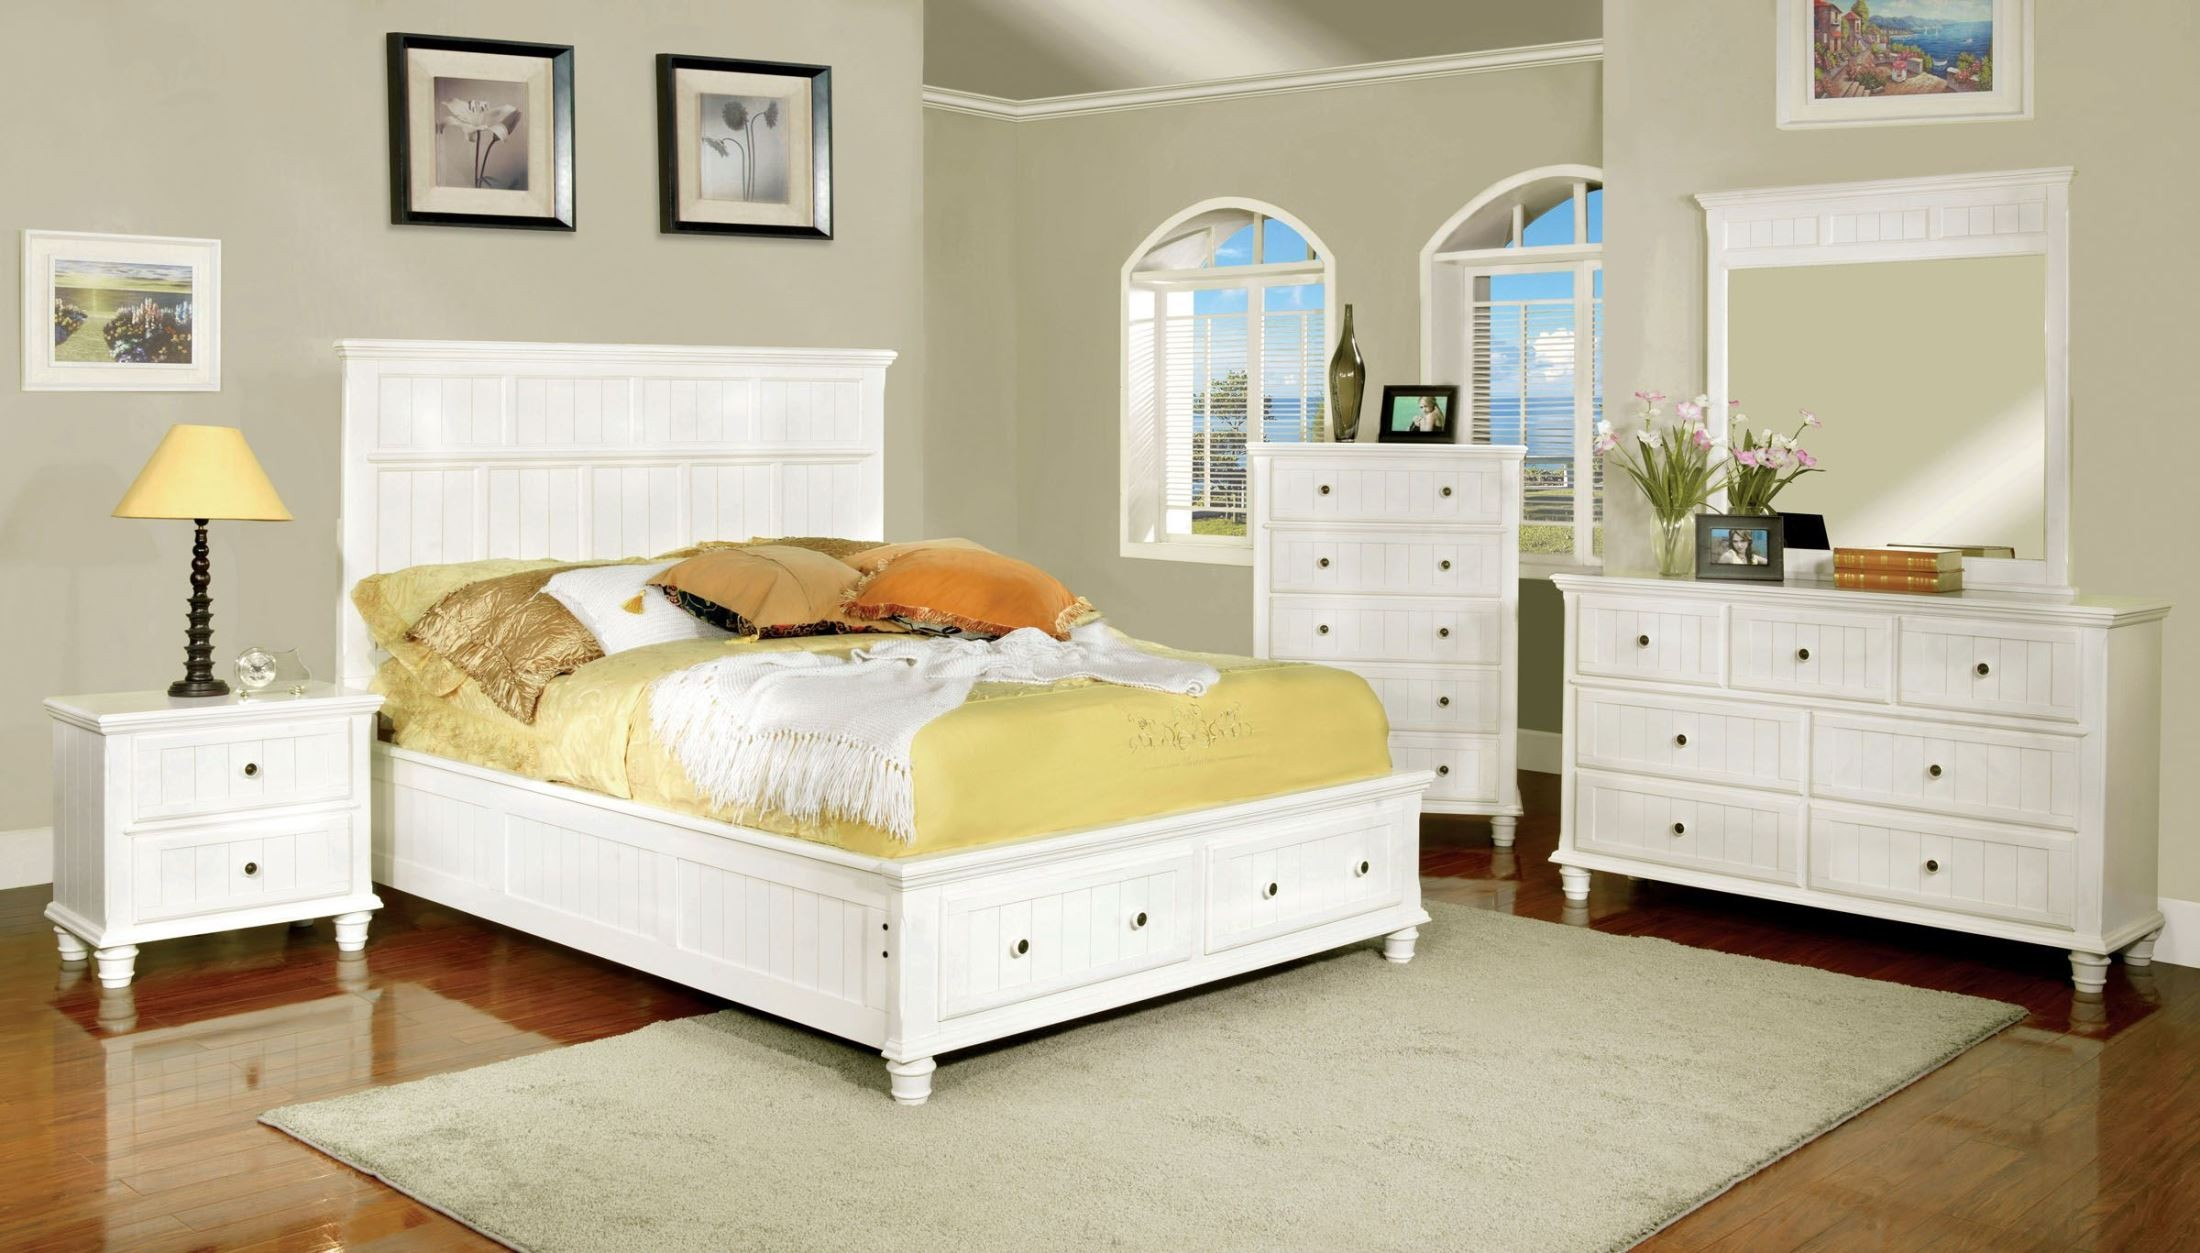 Willow creek white youth platform storage bedroom set from for White bedroom set with storage